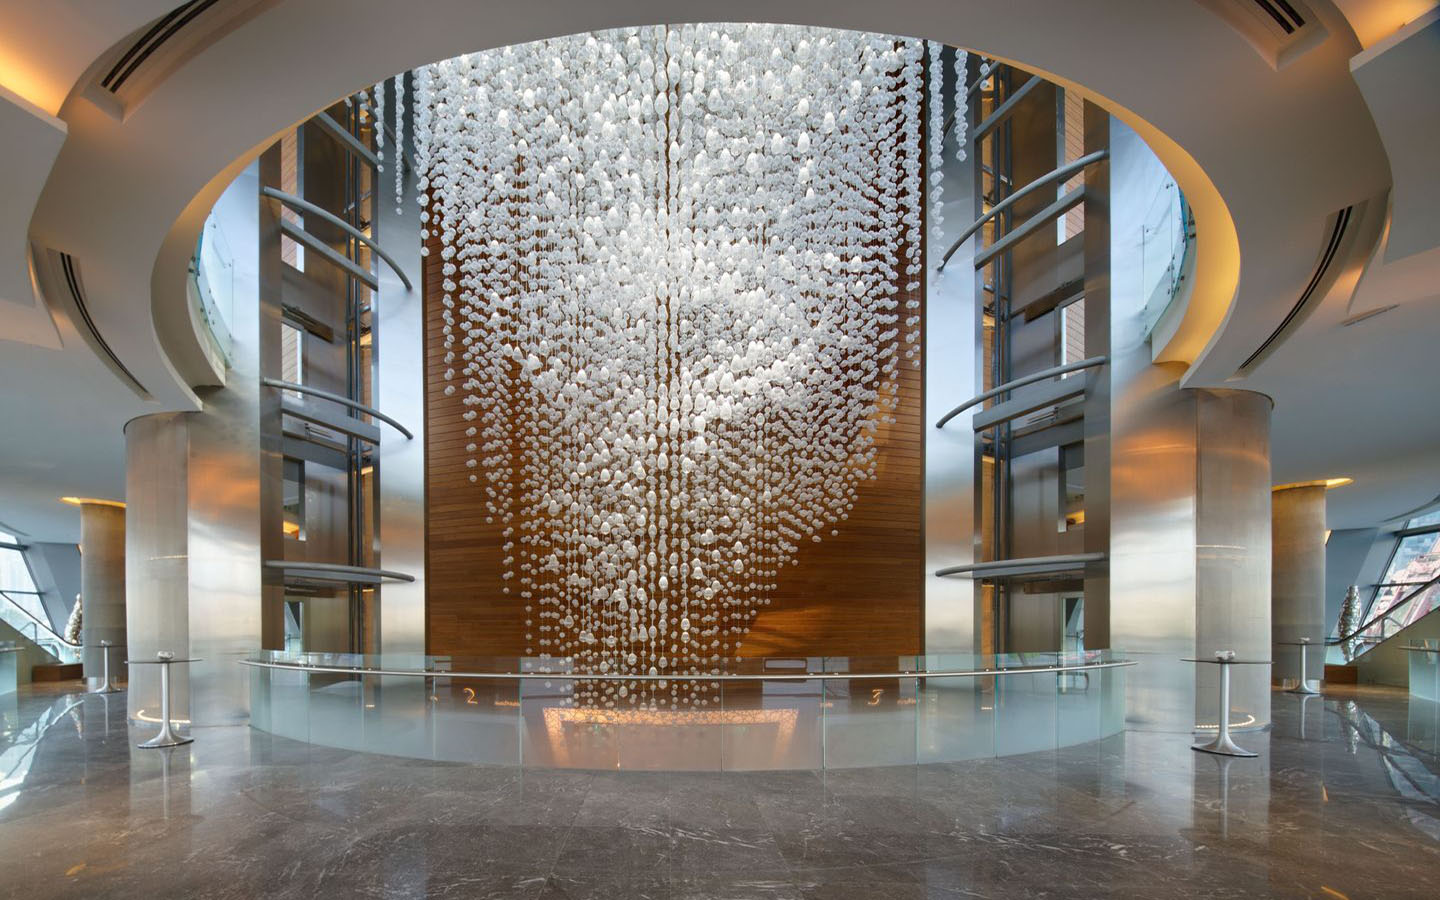 The Gorgeous Chandelier at the Dubai Opera built by LASVIT